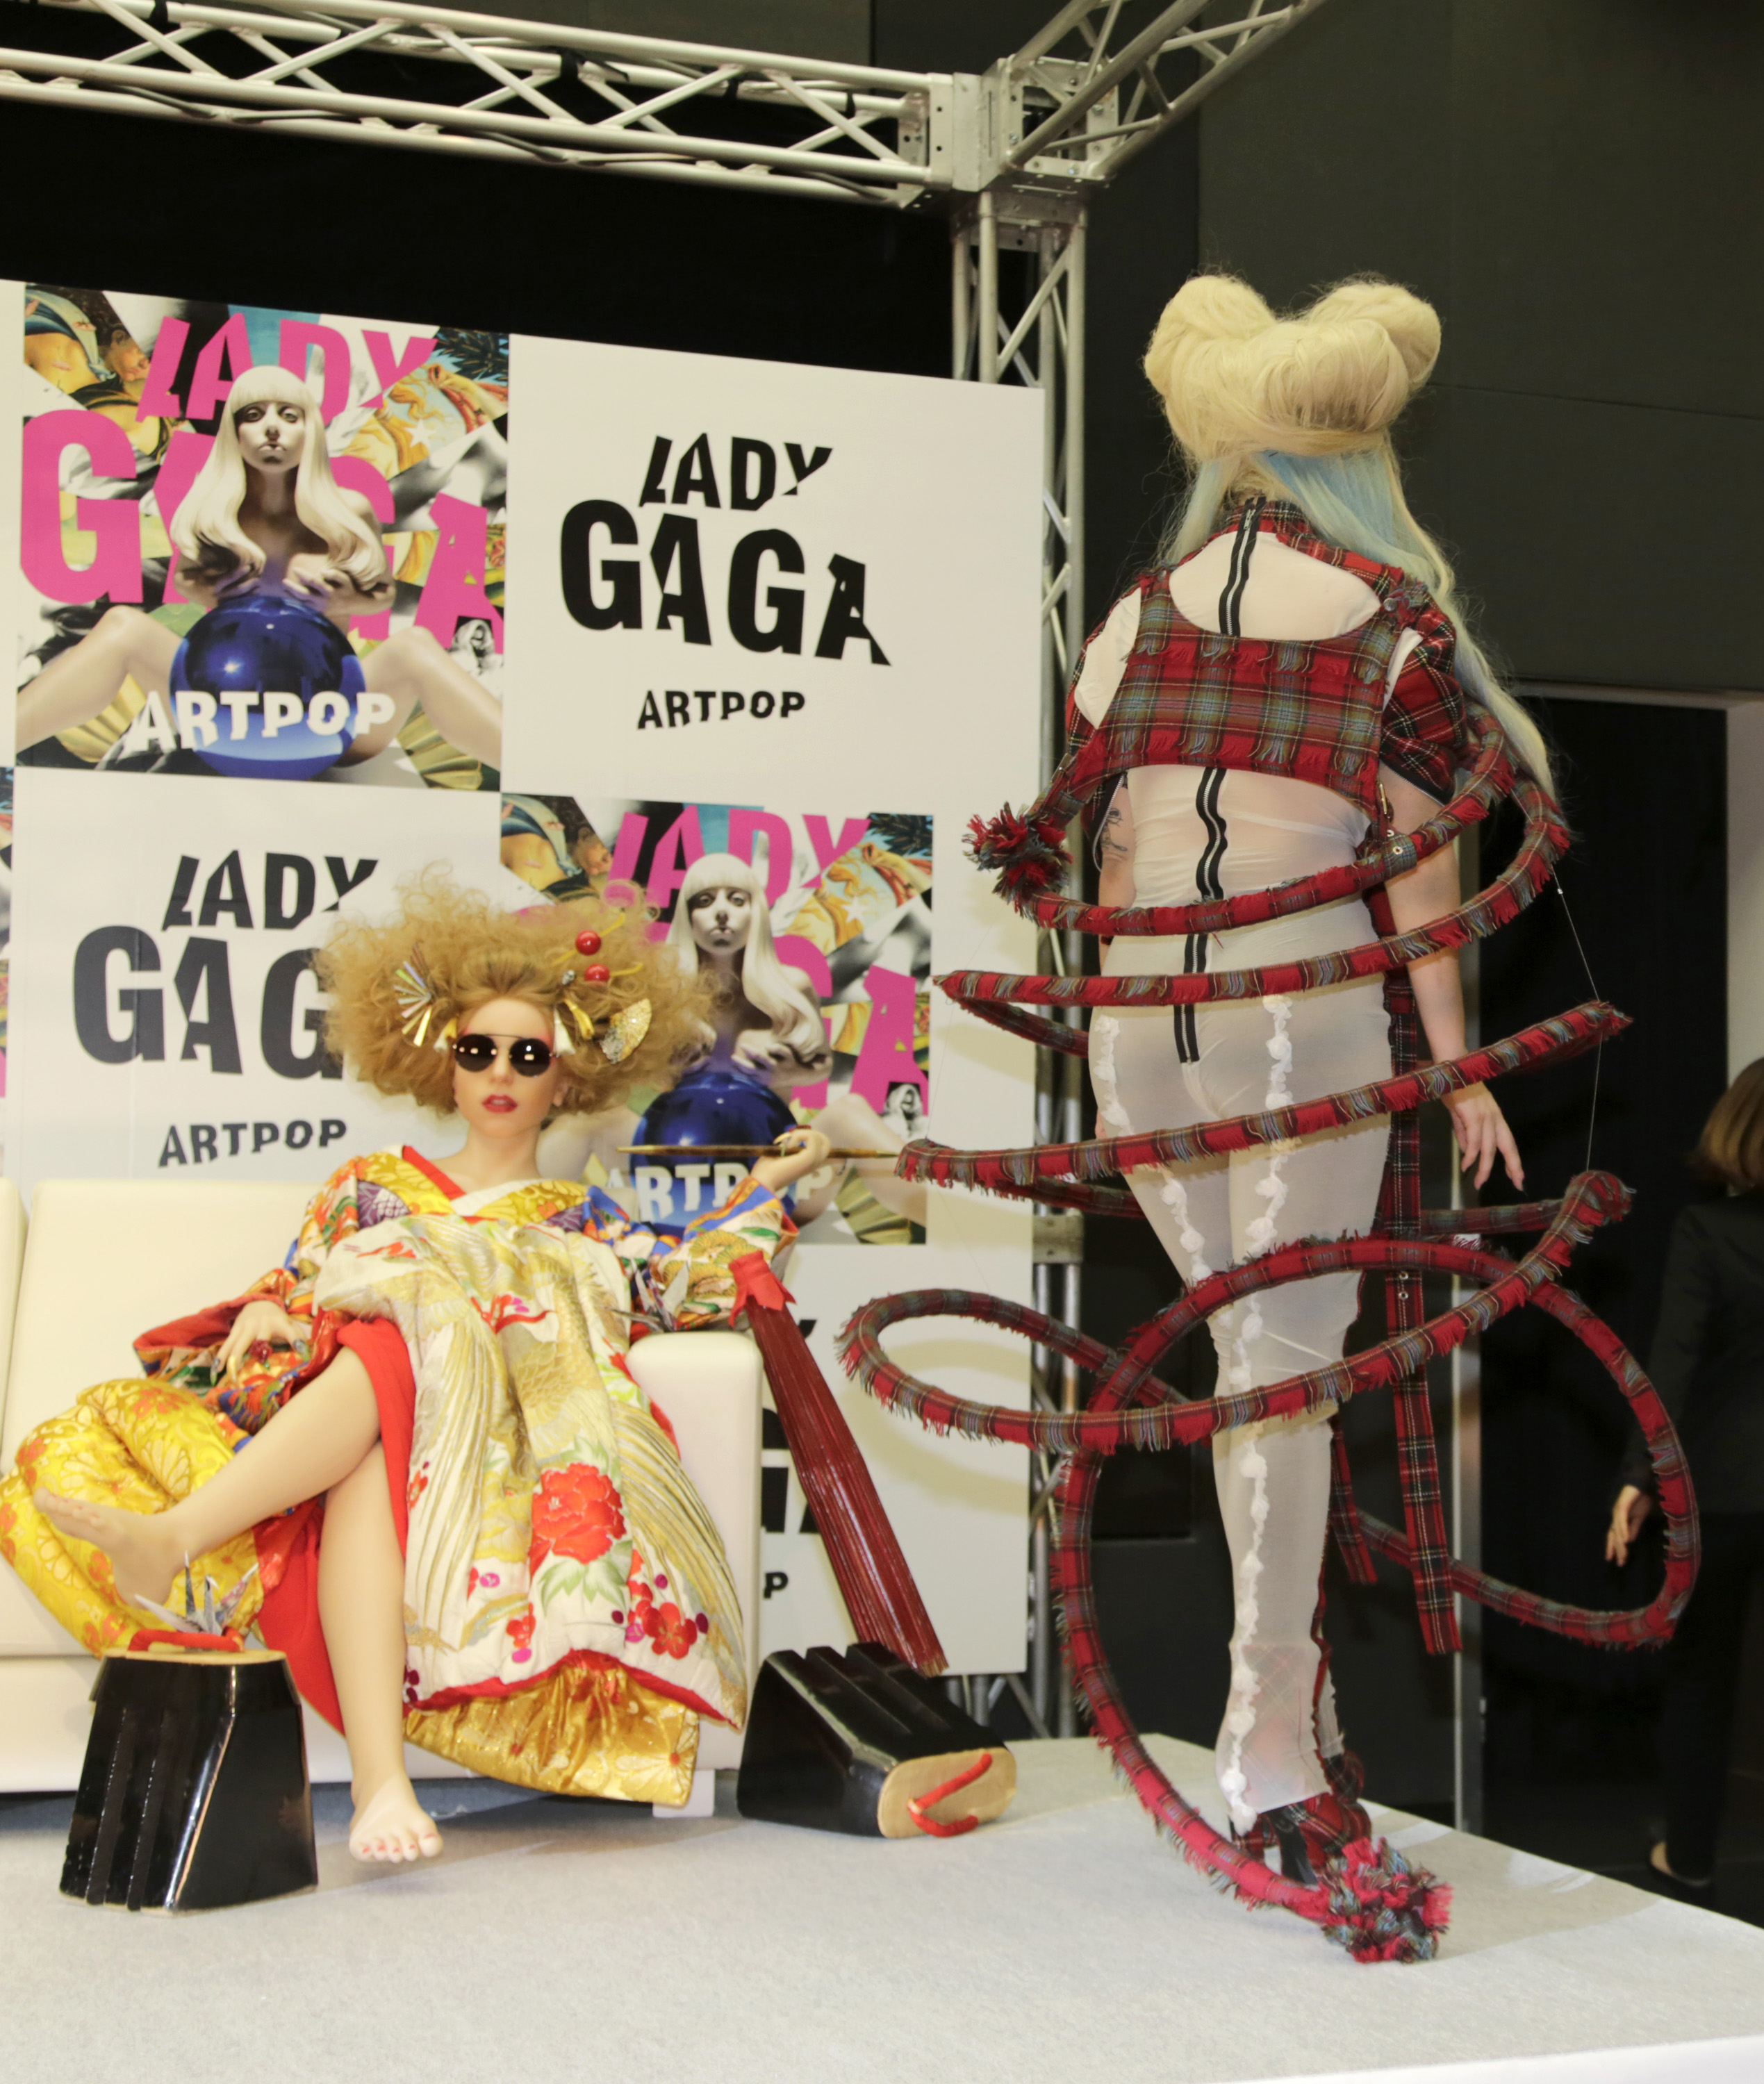 Lady Gaga leaves after a press conference to promote her album 'ARTPOP' in Tokyo, Sunday, Dec. 1, 2013. (AP Photo/Shizuo Kamb